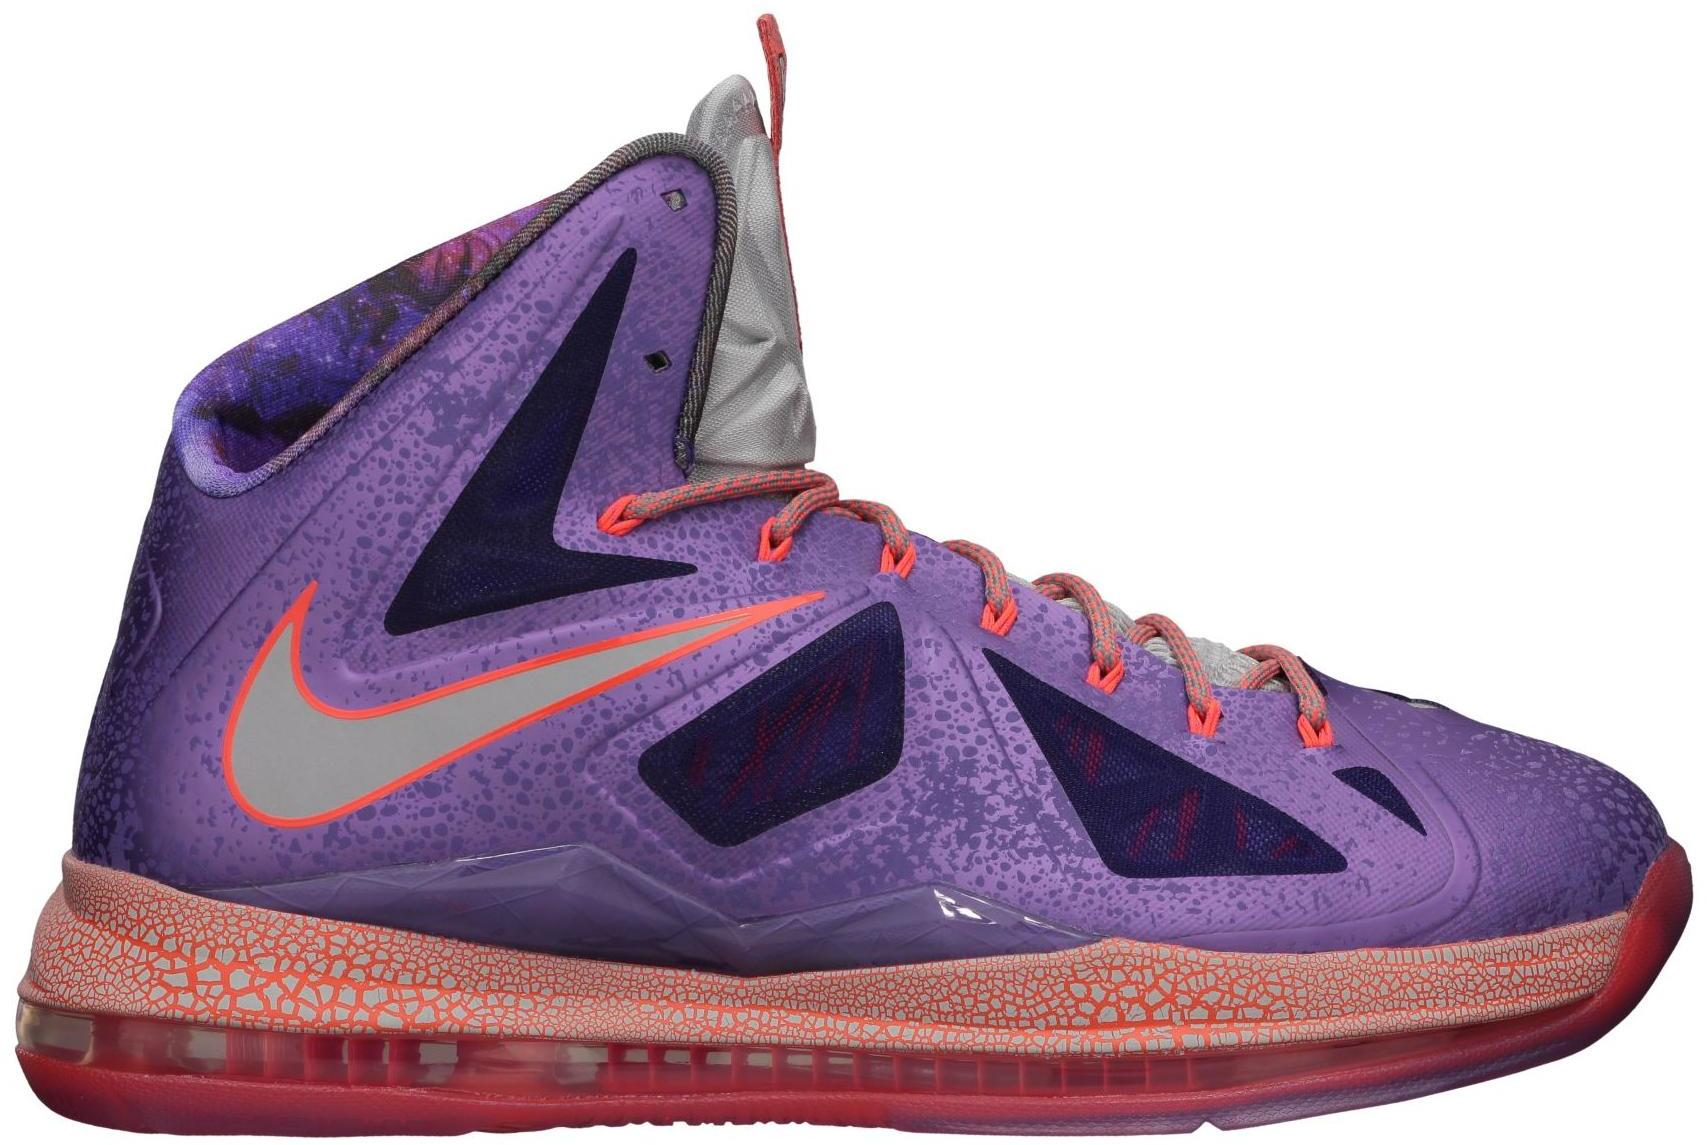 authentic lebron x shoes for sale